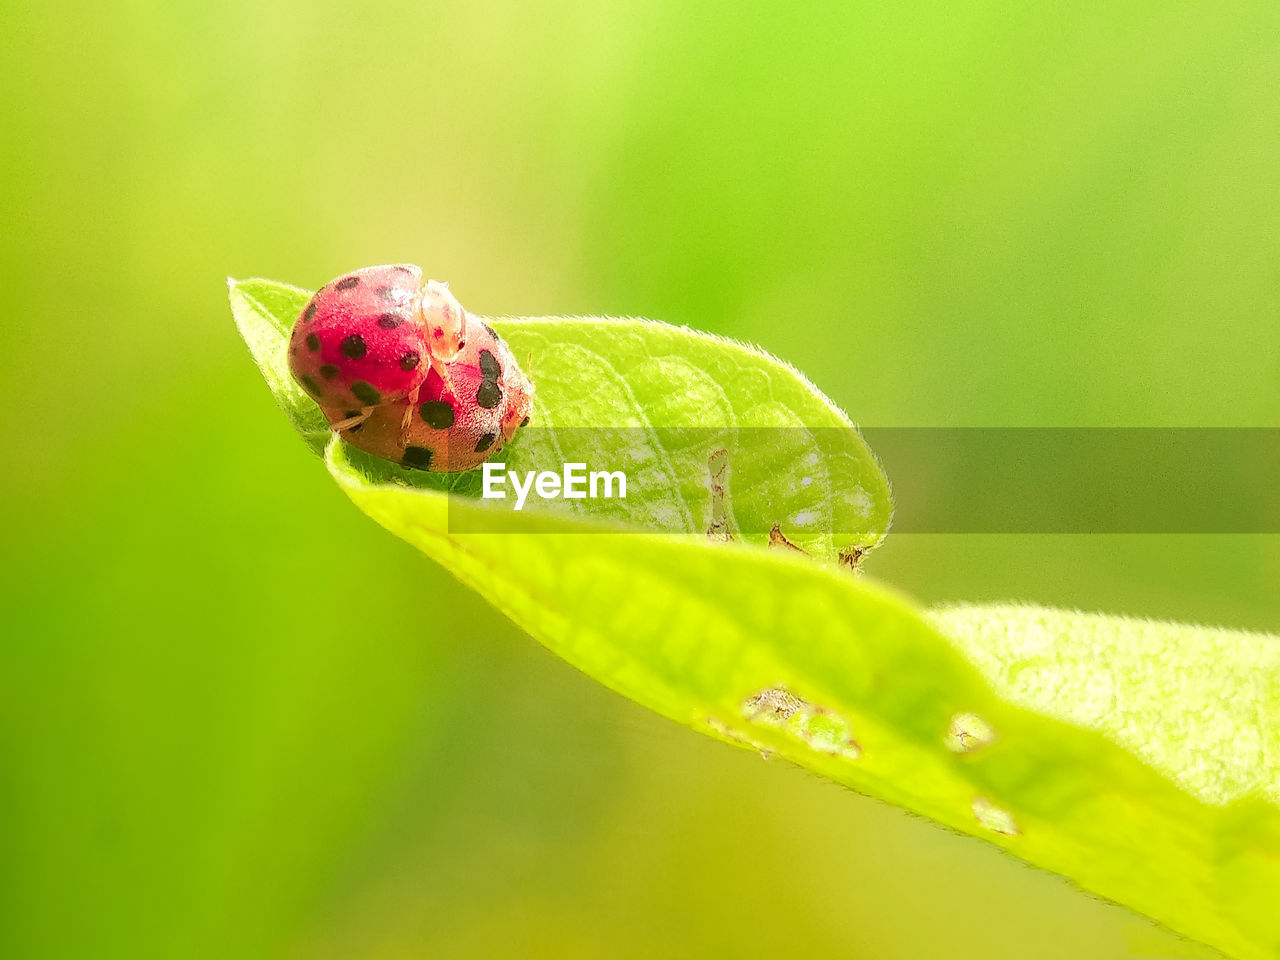 green color, plant part, close-up, animal wildlife, leaf, plant, animals in the wild, animal themes, invertebrate, insect, one animal, animal, nature, no people, beauty in nature, growth, focus on foreground, day, selective focus, vulnerability, outdoors